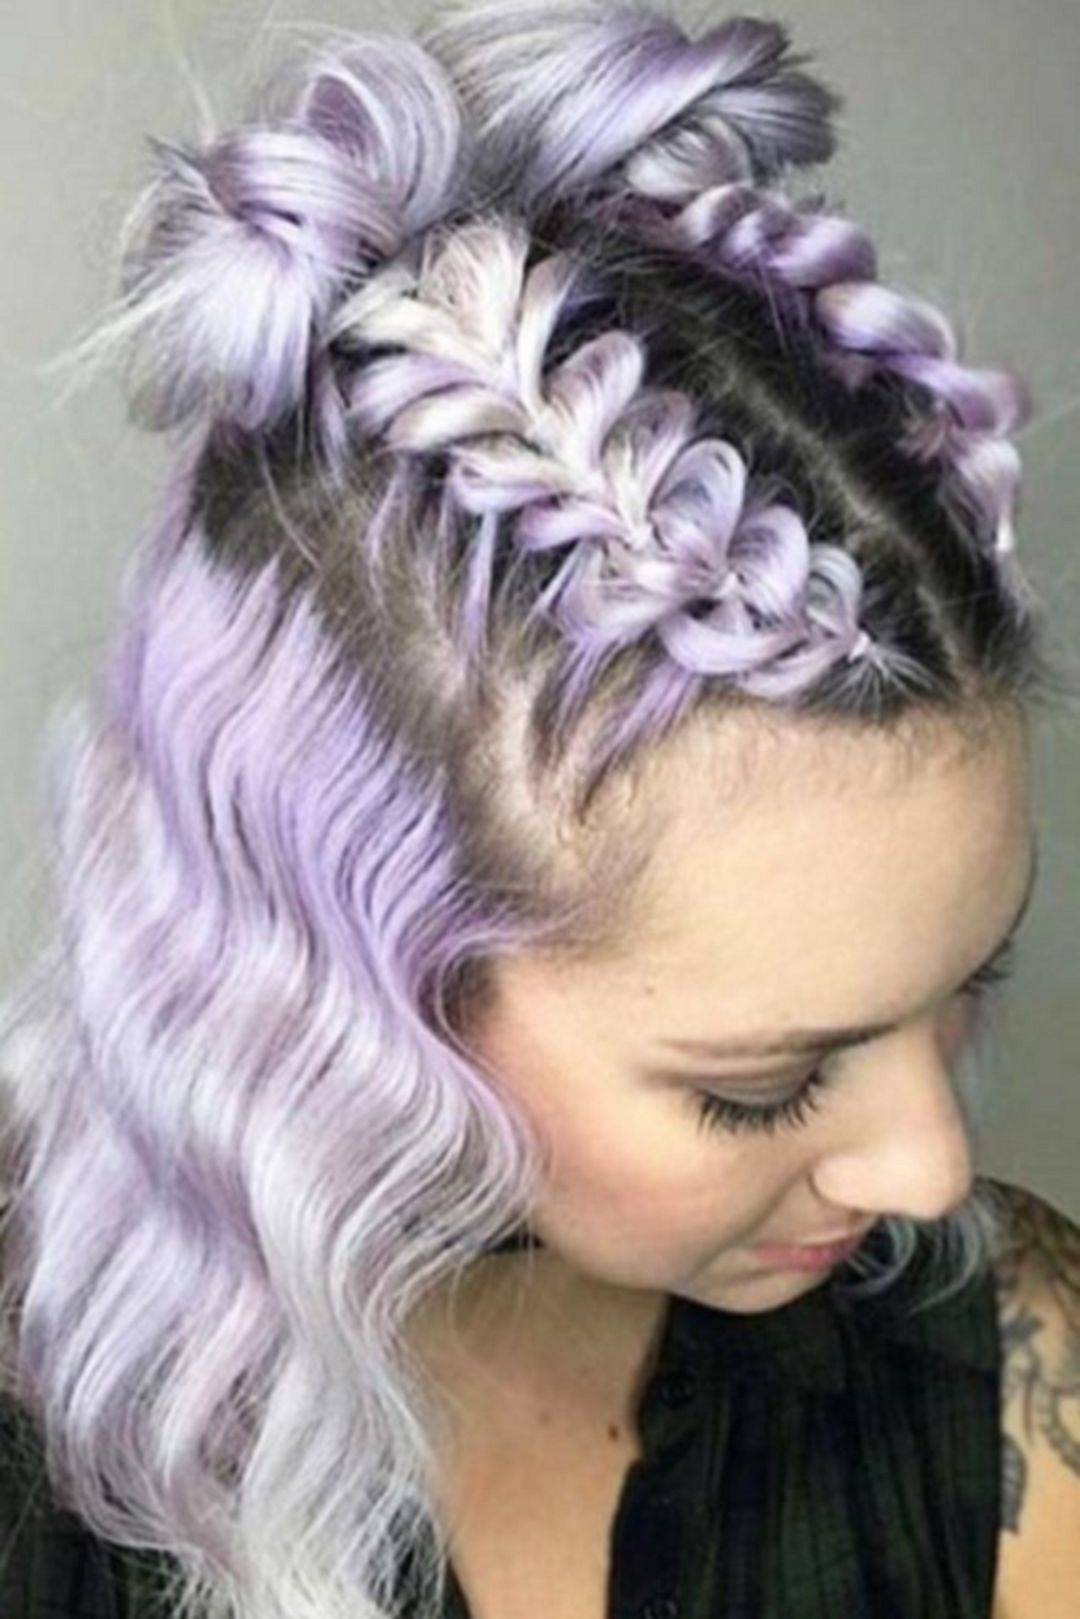 Cute Braid Hairstyles New 30 Awesome Cute Braided Hairstyles Ideas For Women Look More Young